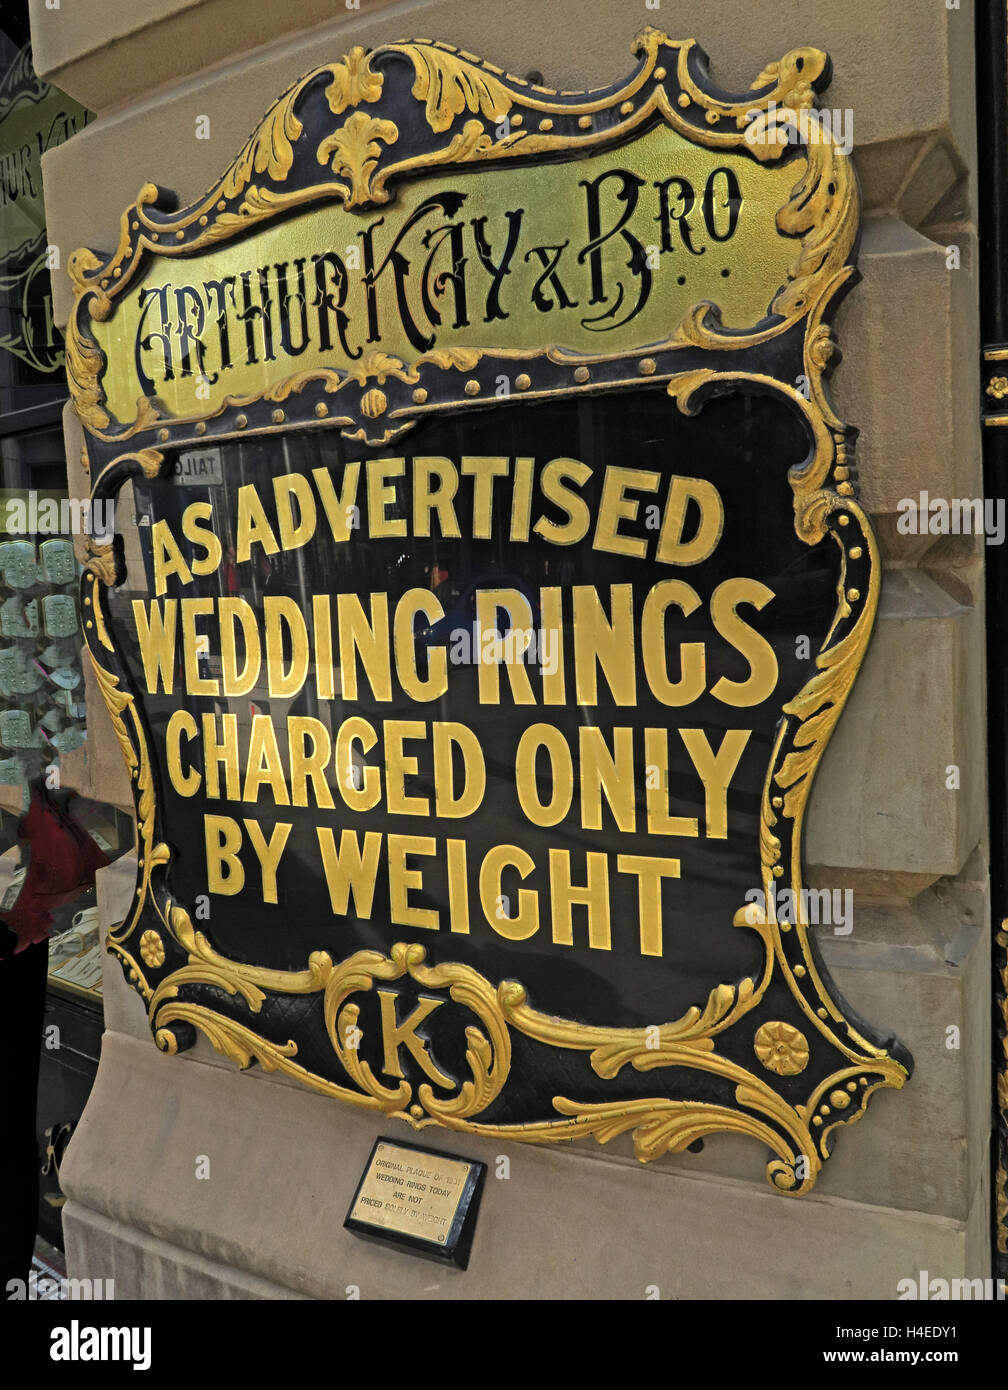 Bro,Jeweller,sign,plaque,gold,silver,#Brexit,Brexit,pound,devalued,inflation,precious,metal,metals,Charged,Only,By,Weight,notice,Market,Street,St,Manchester,England,UK,retail,economy,drop,value,in,M1,Devalued Pound,Arthur Kay,As advertised,Wedding Rings,Market St,Drop In Value,GoTonySmith,@HotpixUK,Tony,Smith,UK,GB,Great,Britain,United,Kingdom,English,British,England,M1,Buy Pictures of,Buy Images Of,Images of,Stock Images,Tony Smith,United Kingdom,Great Britain,British Isles,drop,in,value,of,pound,since,brexit,drop,in,value,of,pound,brexit,affect the pound,Royal Exchange Theatre,2 New Market,M1 1PT